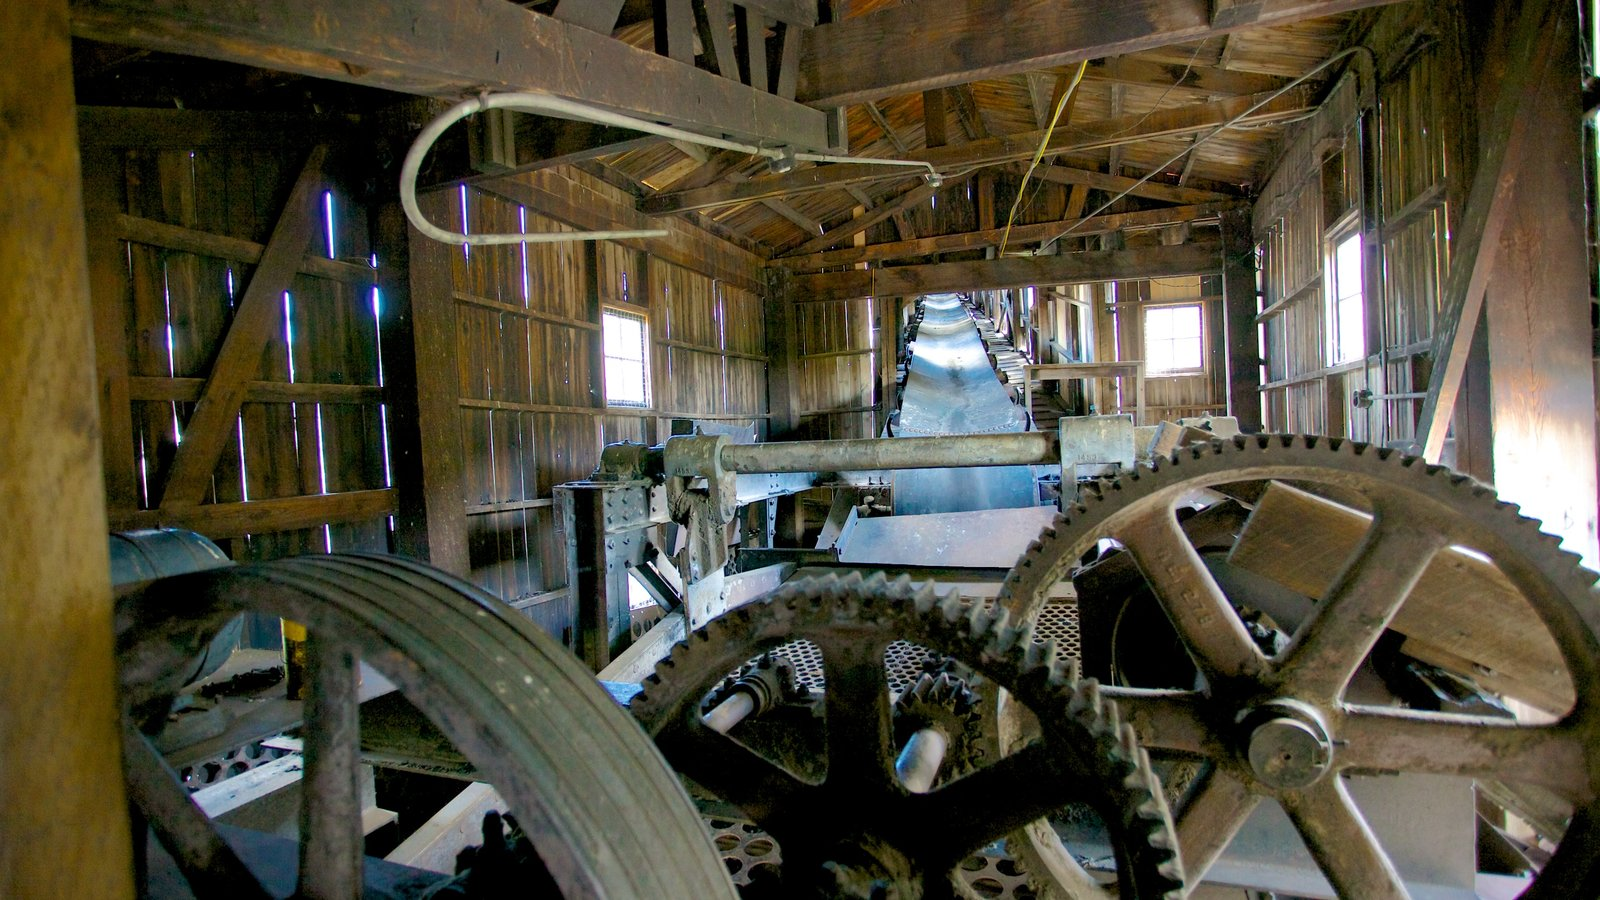 Atlas Coal Mine National Historic Site featuring industrial elements and interior views